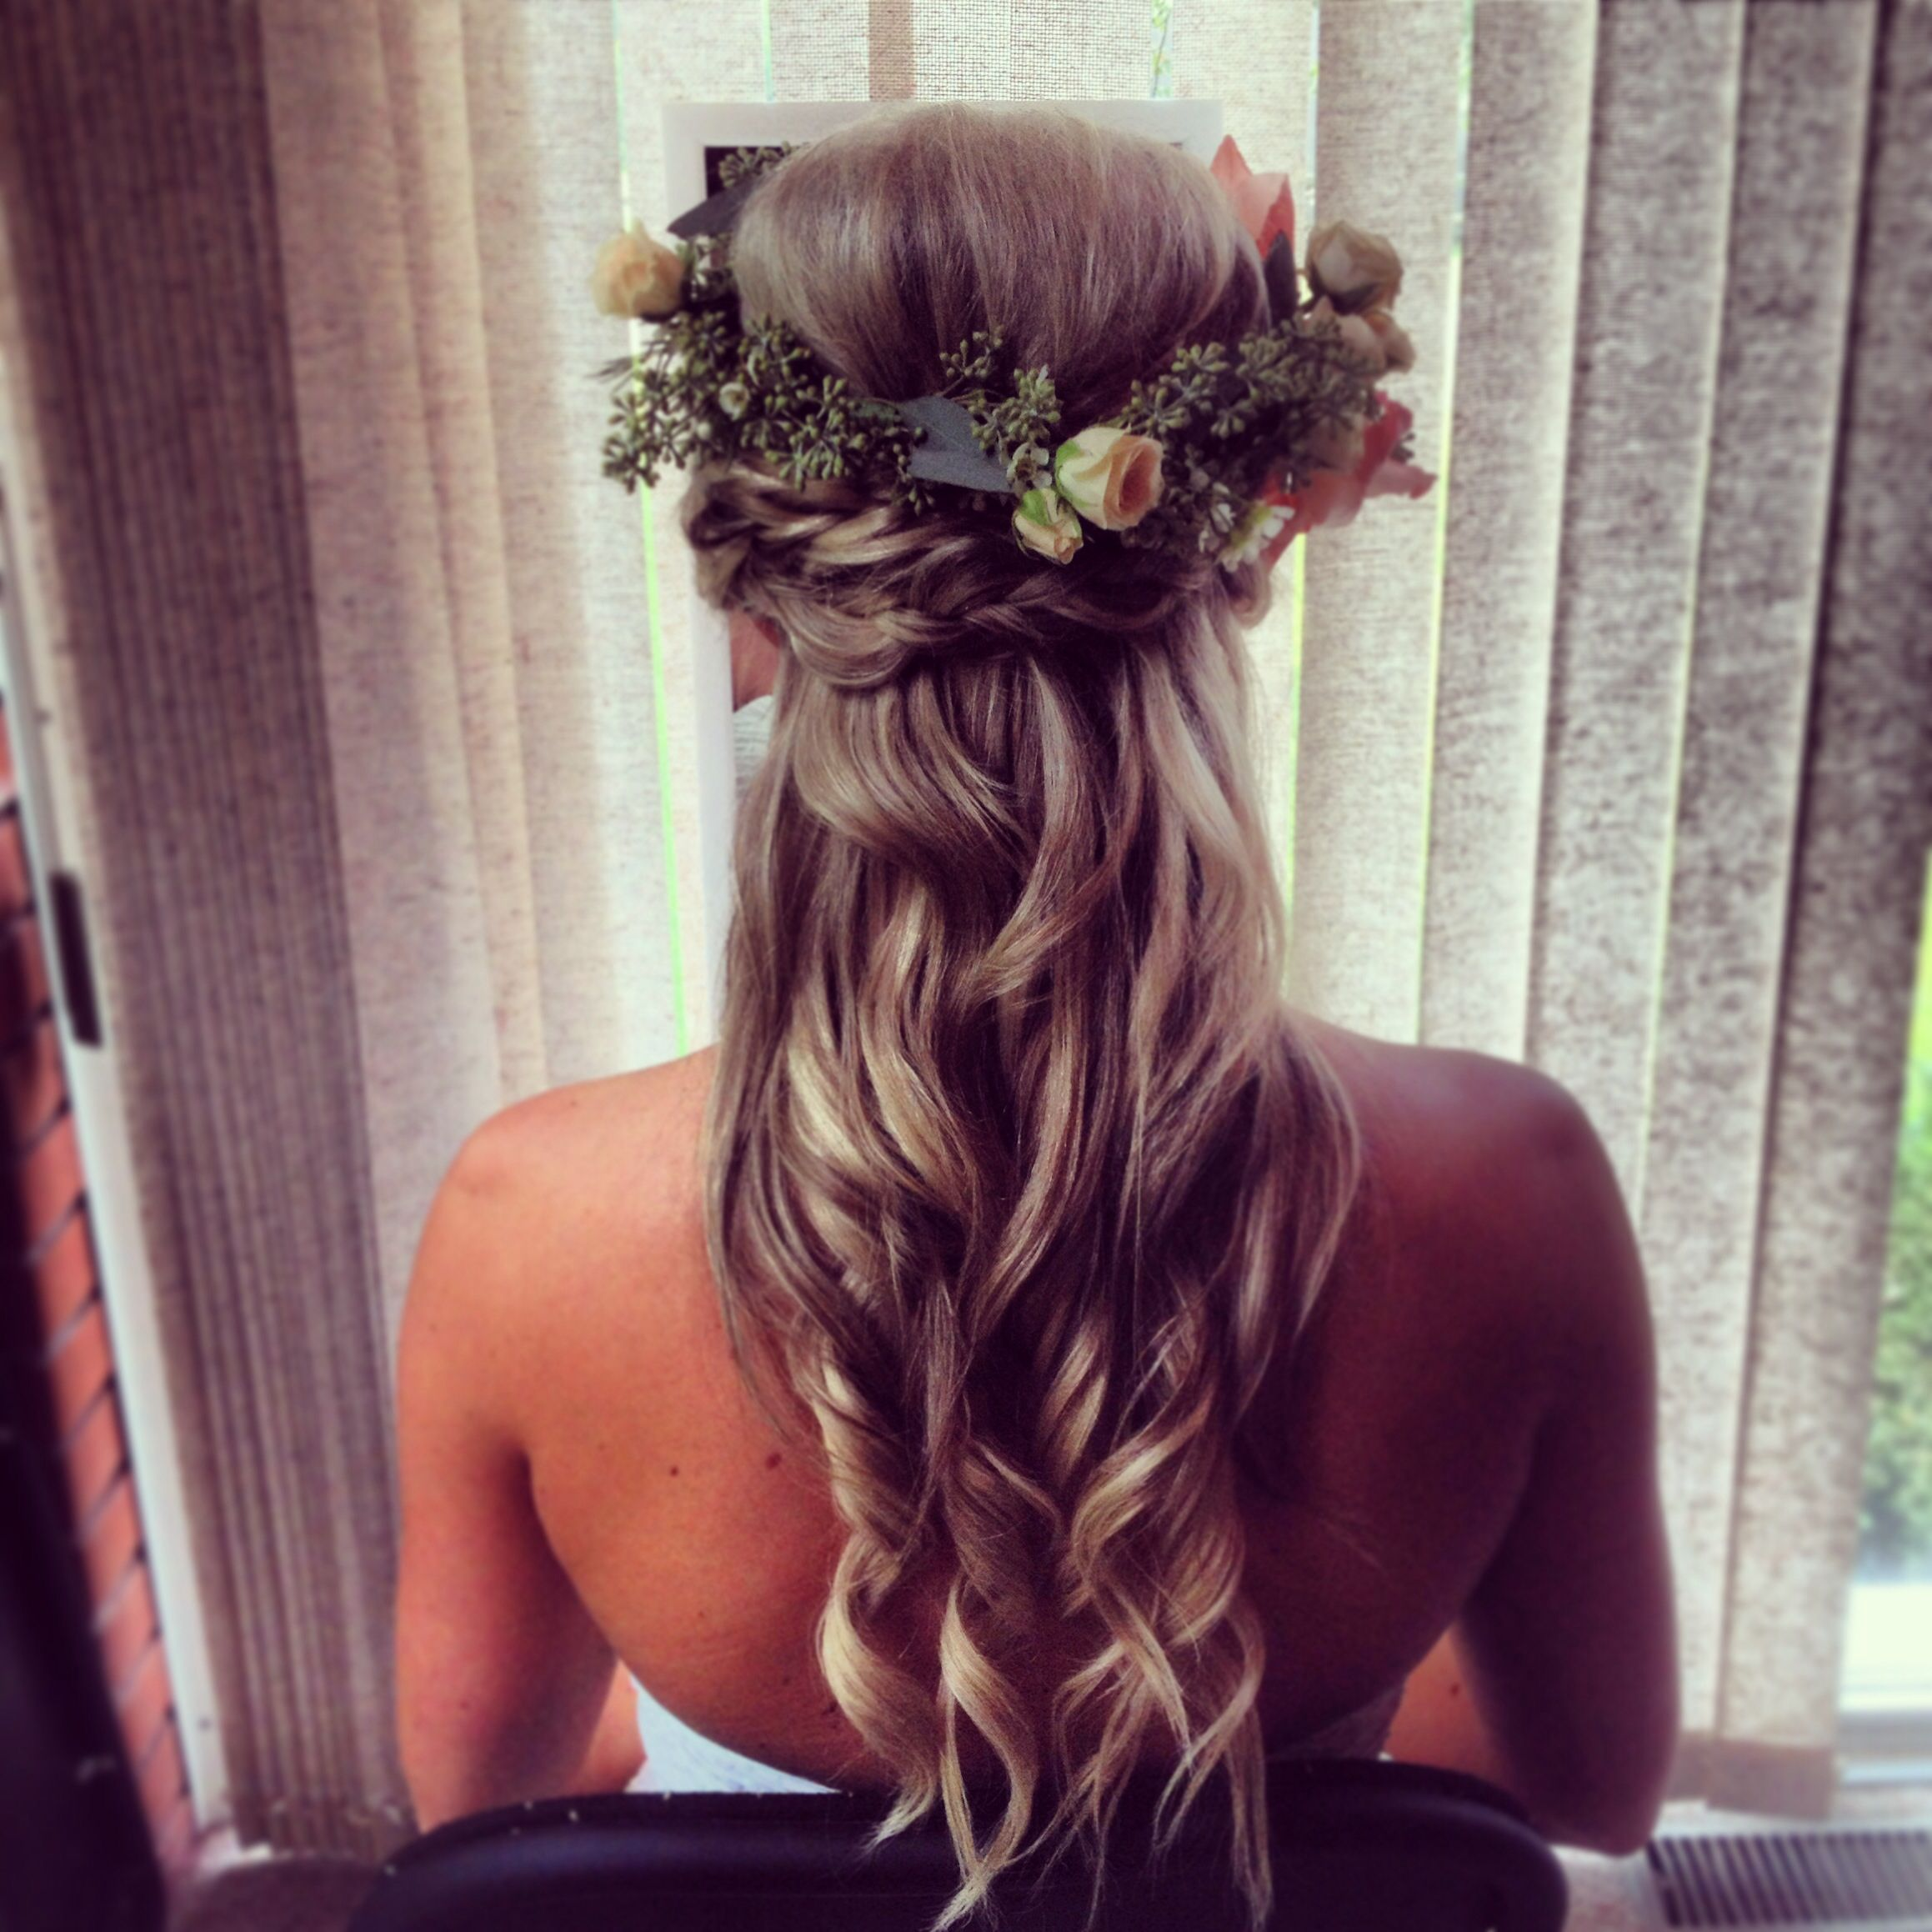 Boho Bridal Half Up Hairstyle With Braids And Flower Crown Half